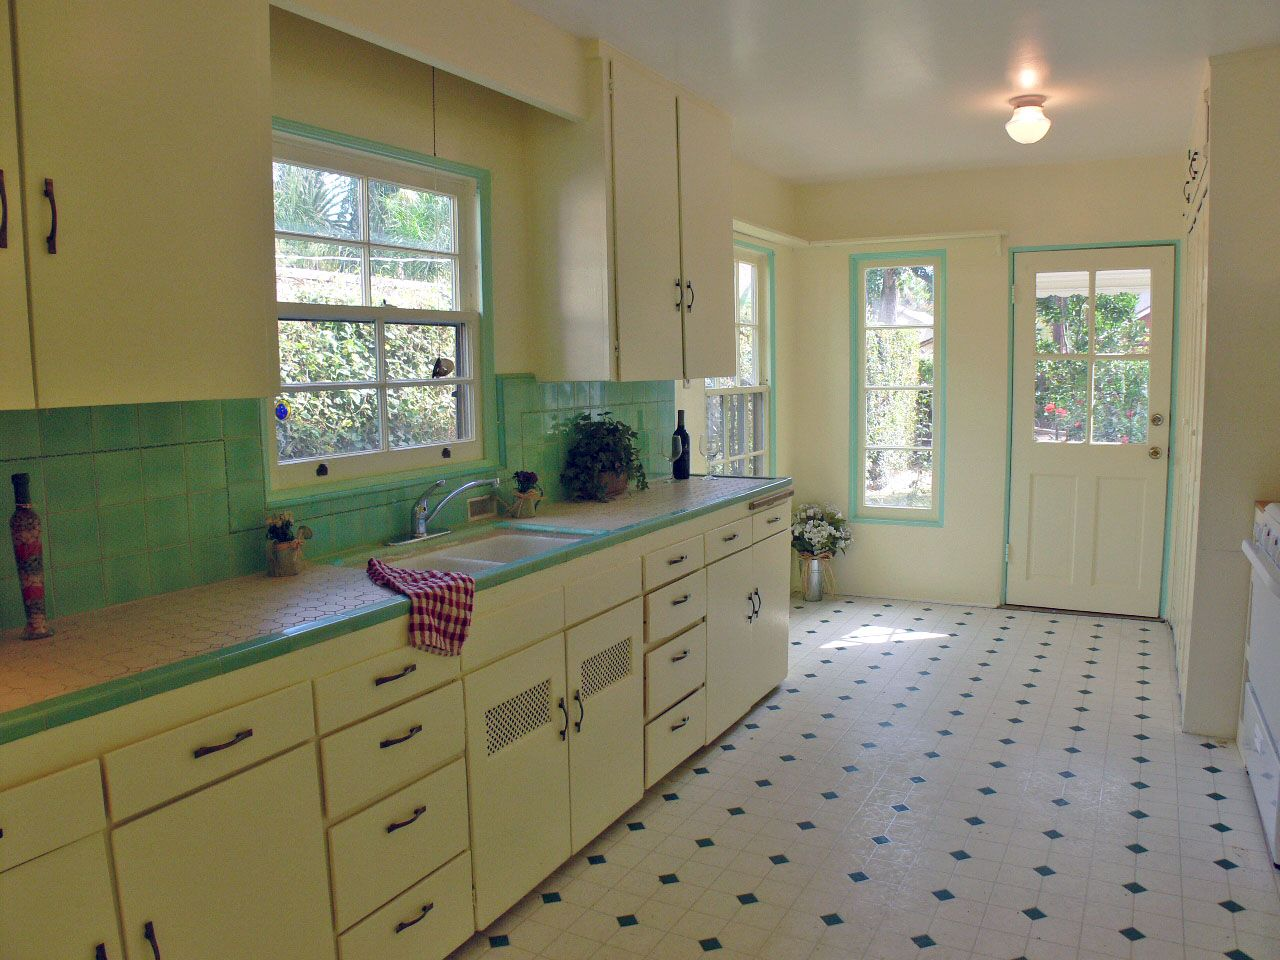 Retro Kitchen Flooring 17 Best Images About 1930s To 1950s Kitchen Design On Pinterest